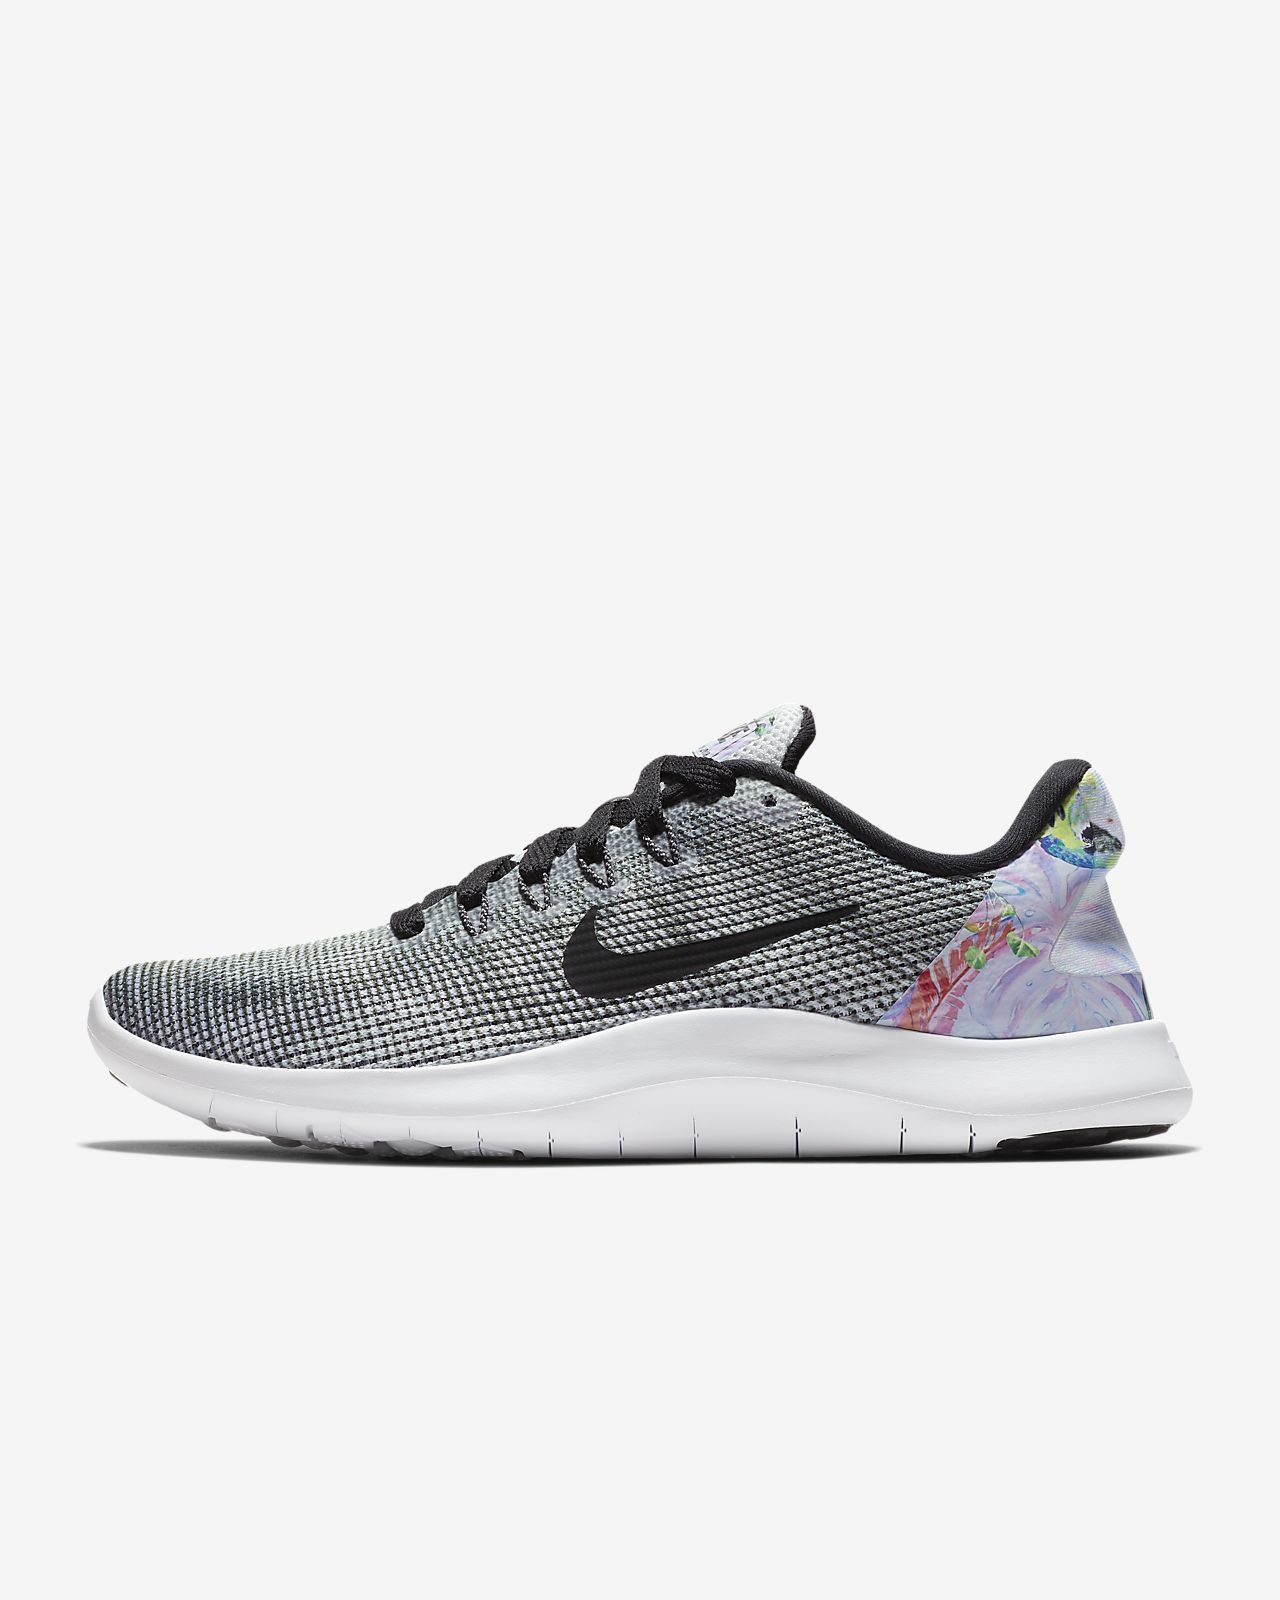 1c952ec8272 Nike Flex RN 2018 Premium Women's Running Shoe | Fashion in 2019 ...